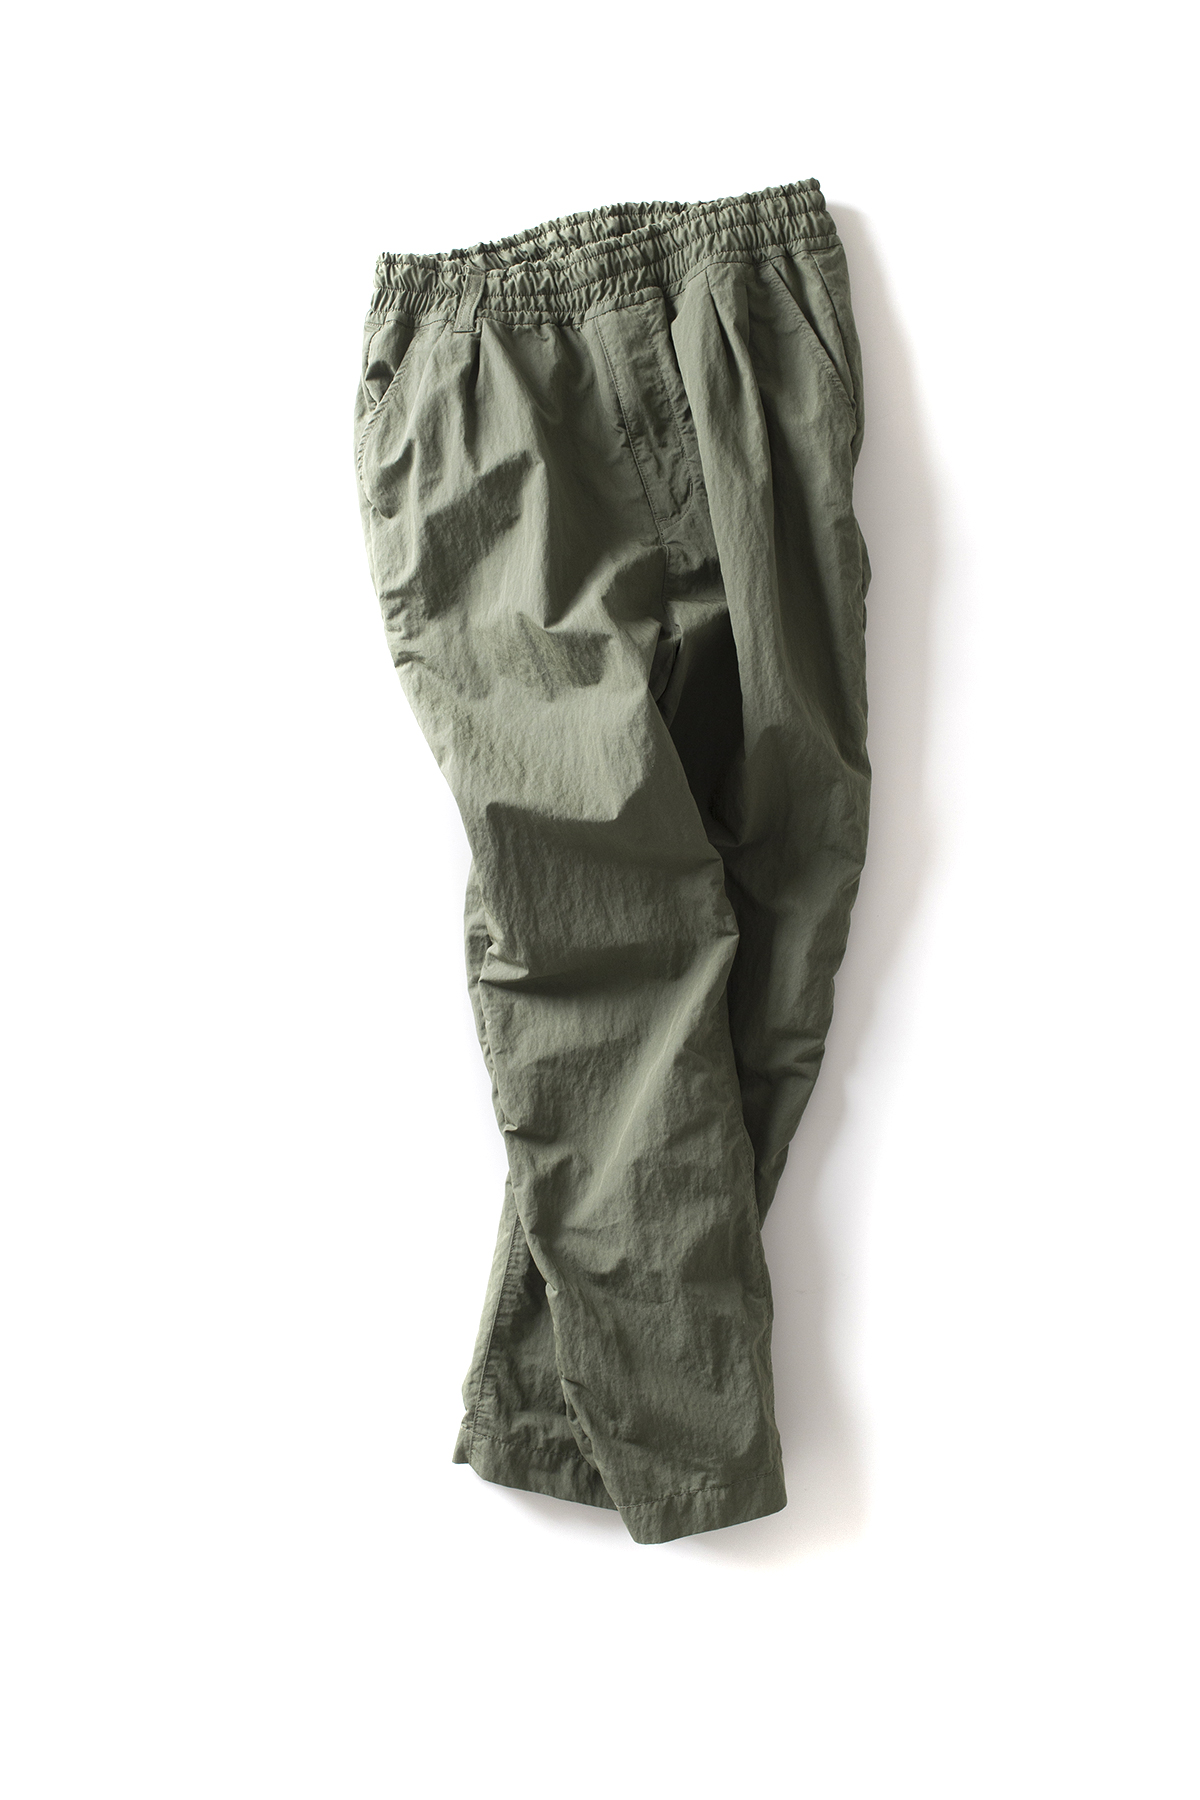 WHITE MOUNTAINEERING : Shearing Sarrouel Pants (Khaki)